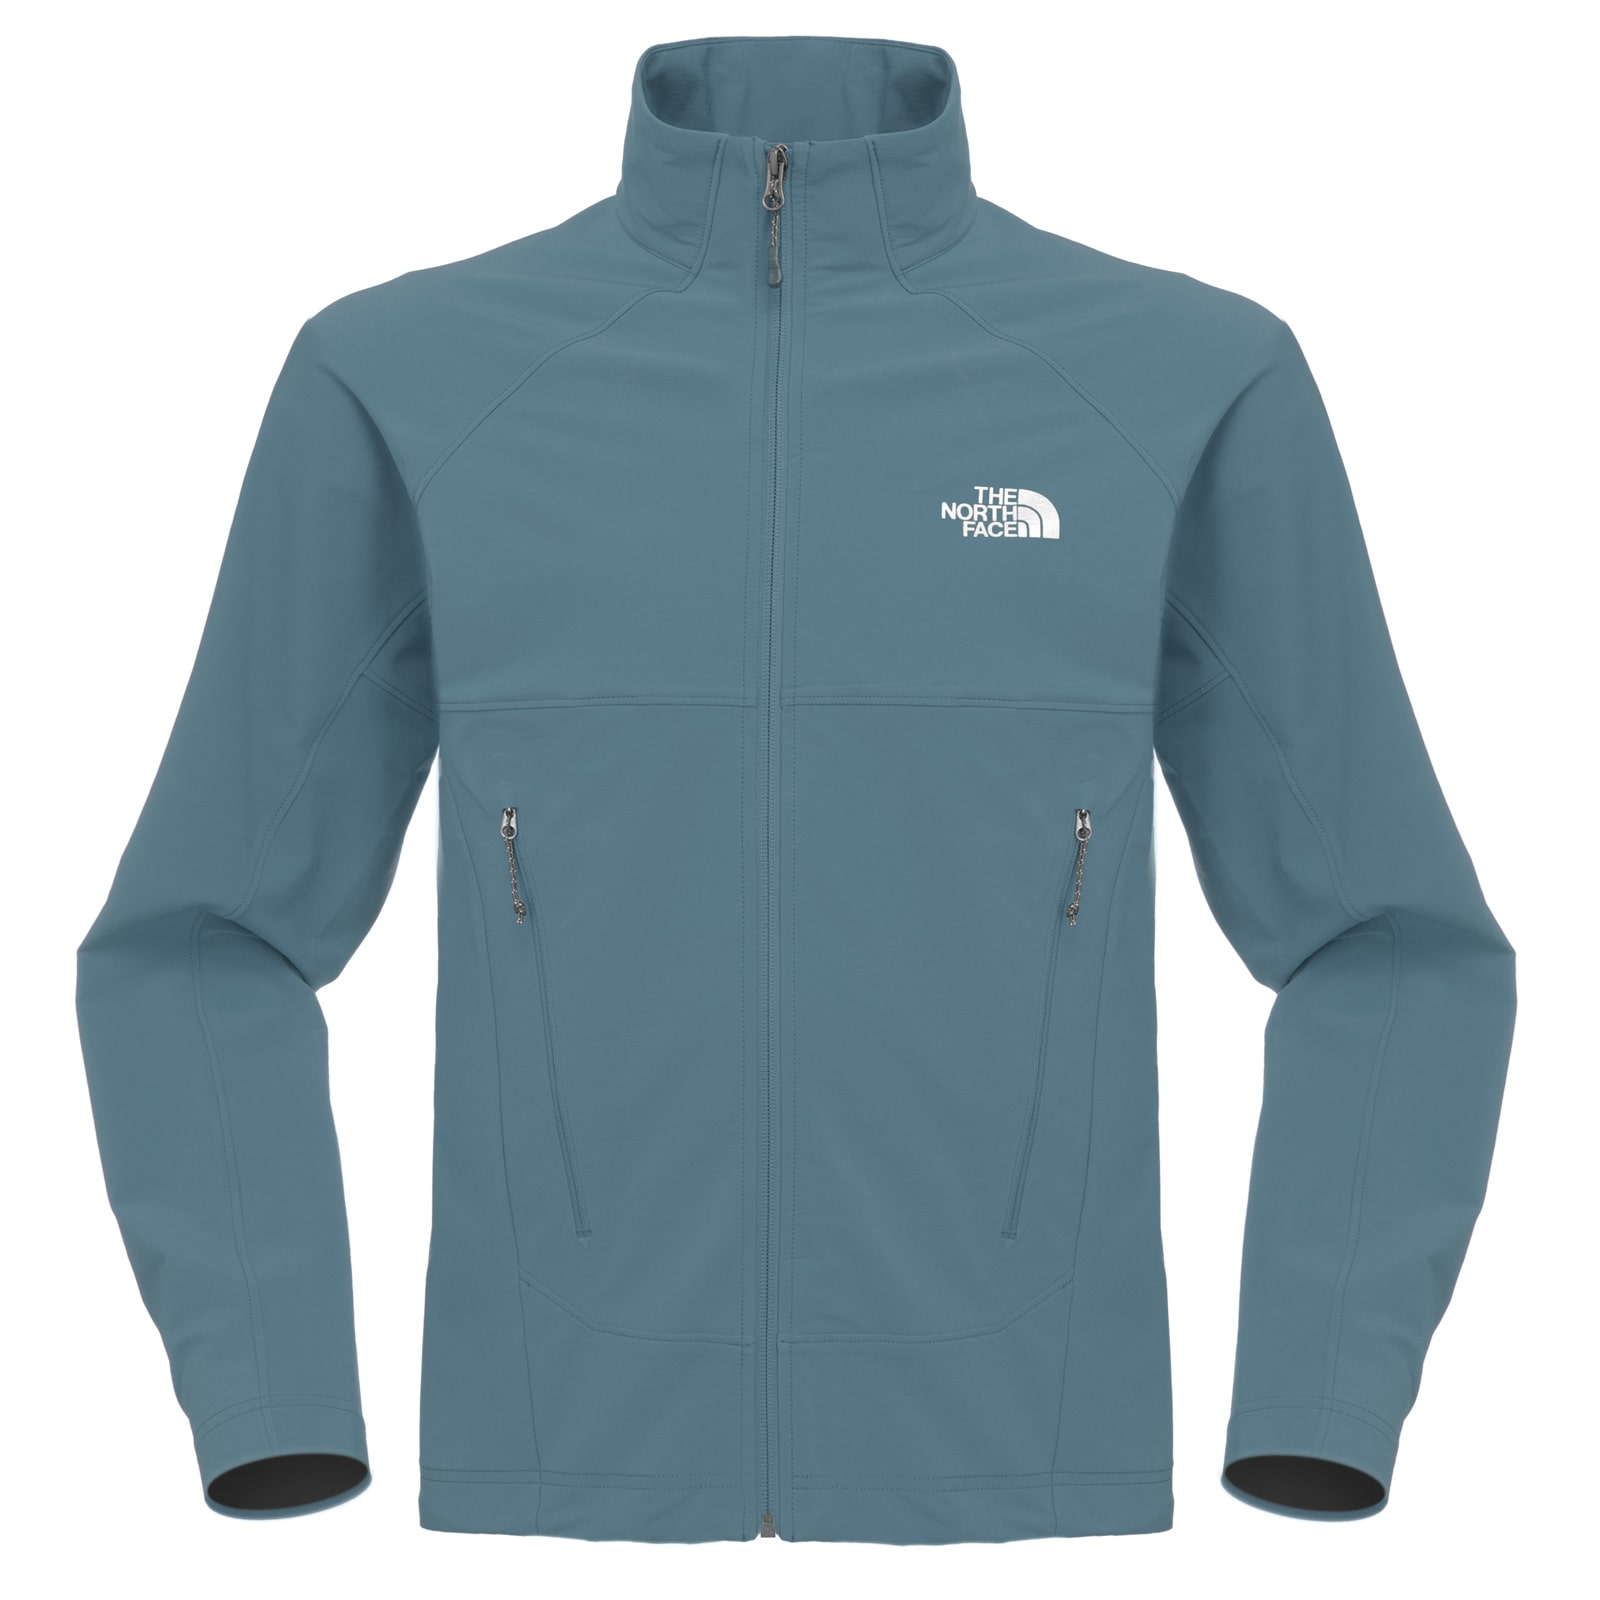 69875cdf28e5 ... reduced buy the north face mens iodin jacket from outnorth 282c7 3a780